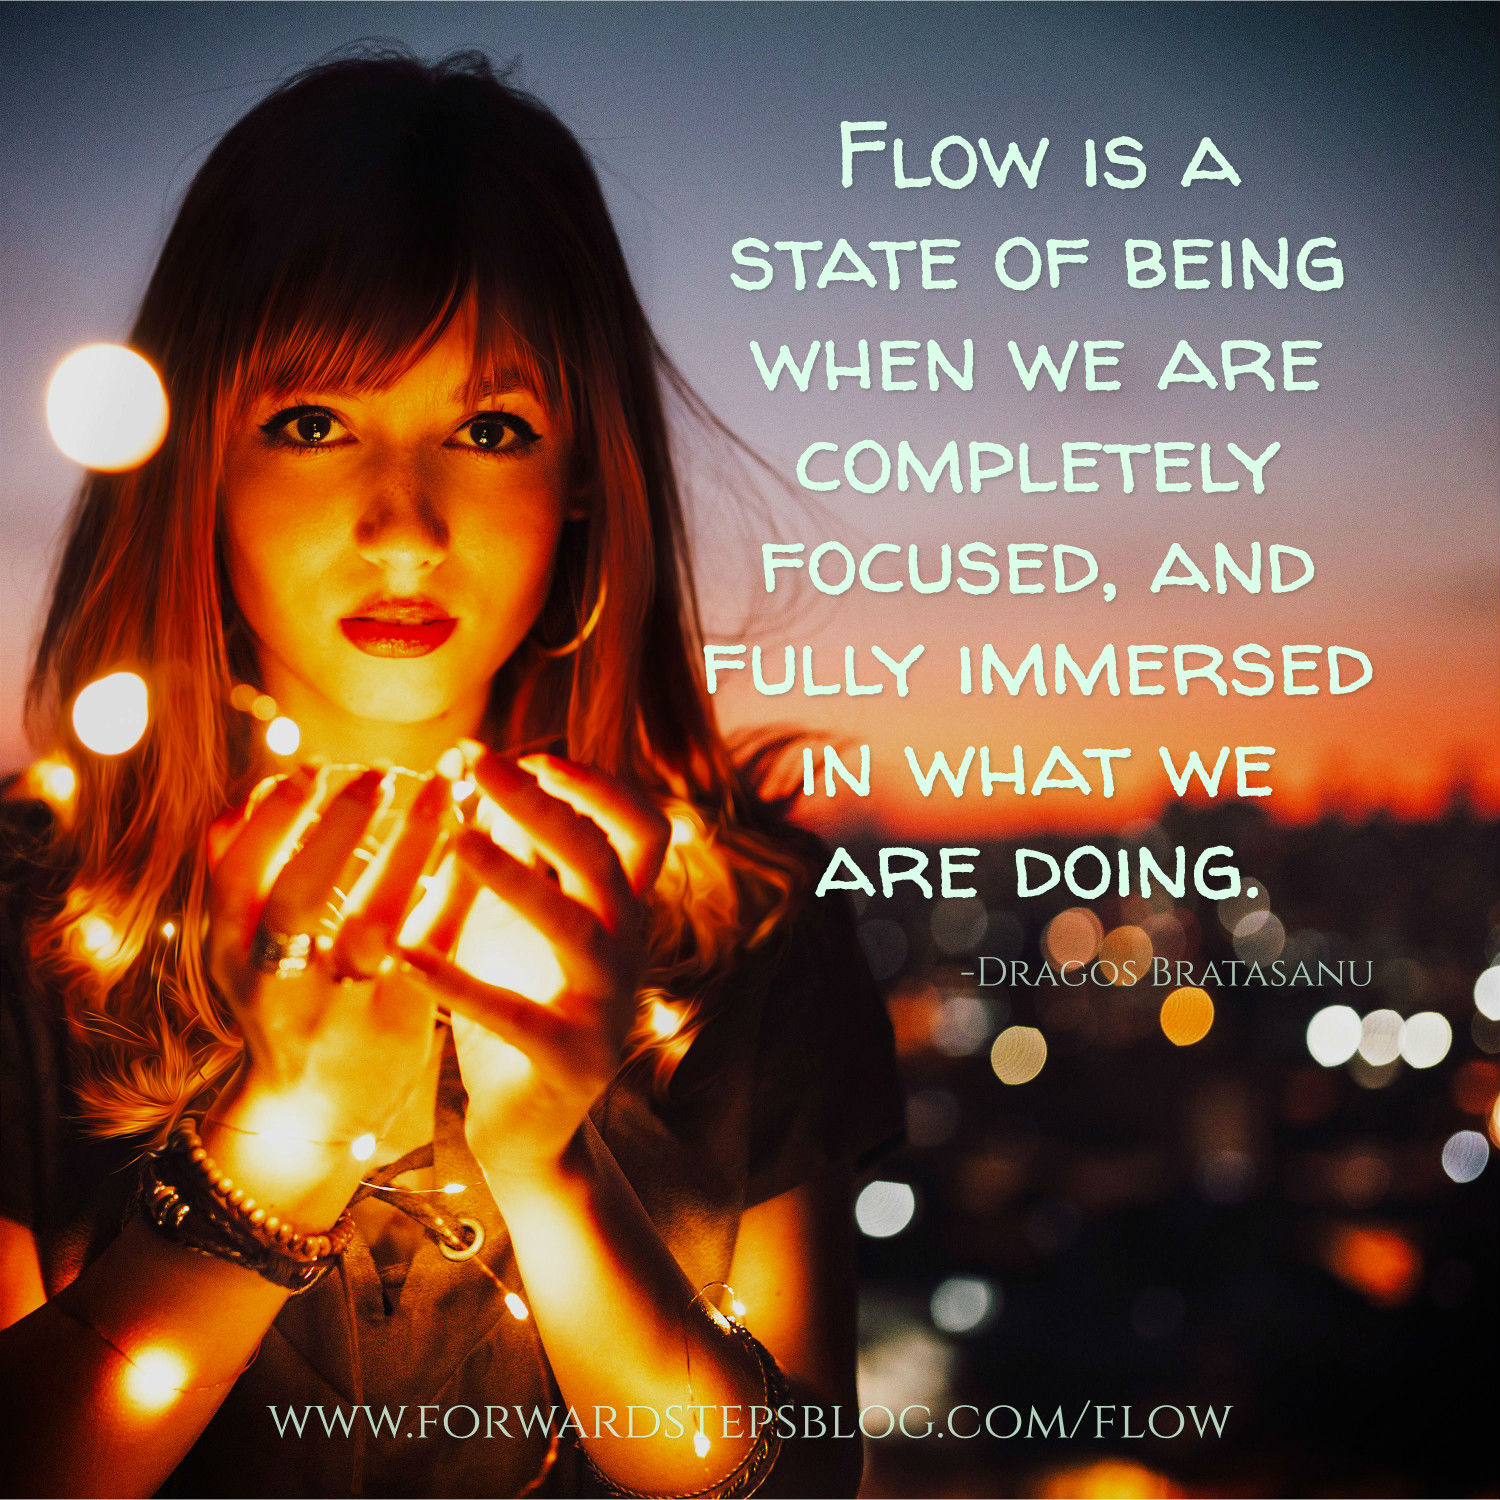 Flow is a state of being - Forward Steps image_10